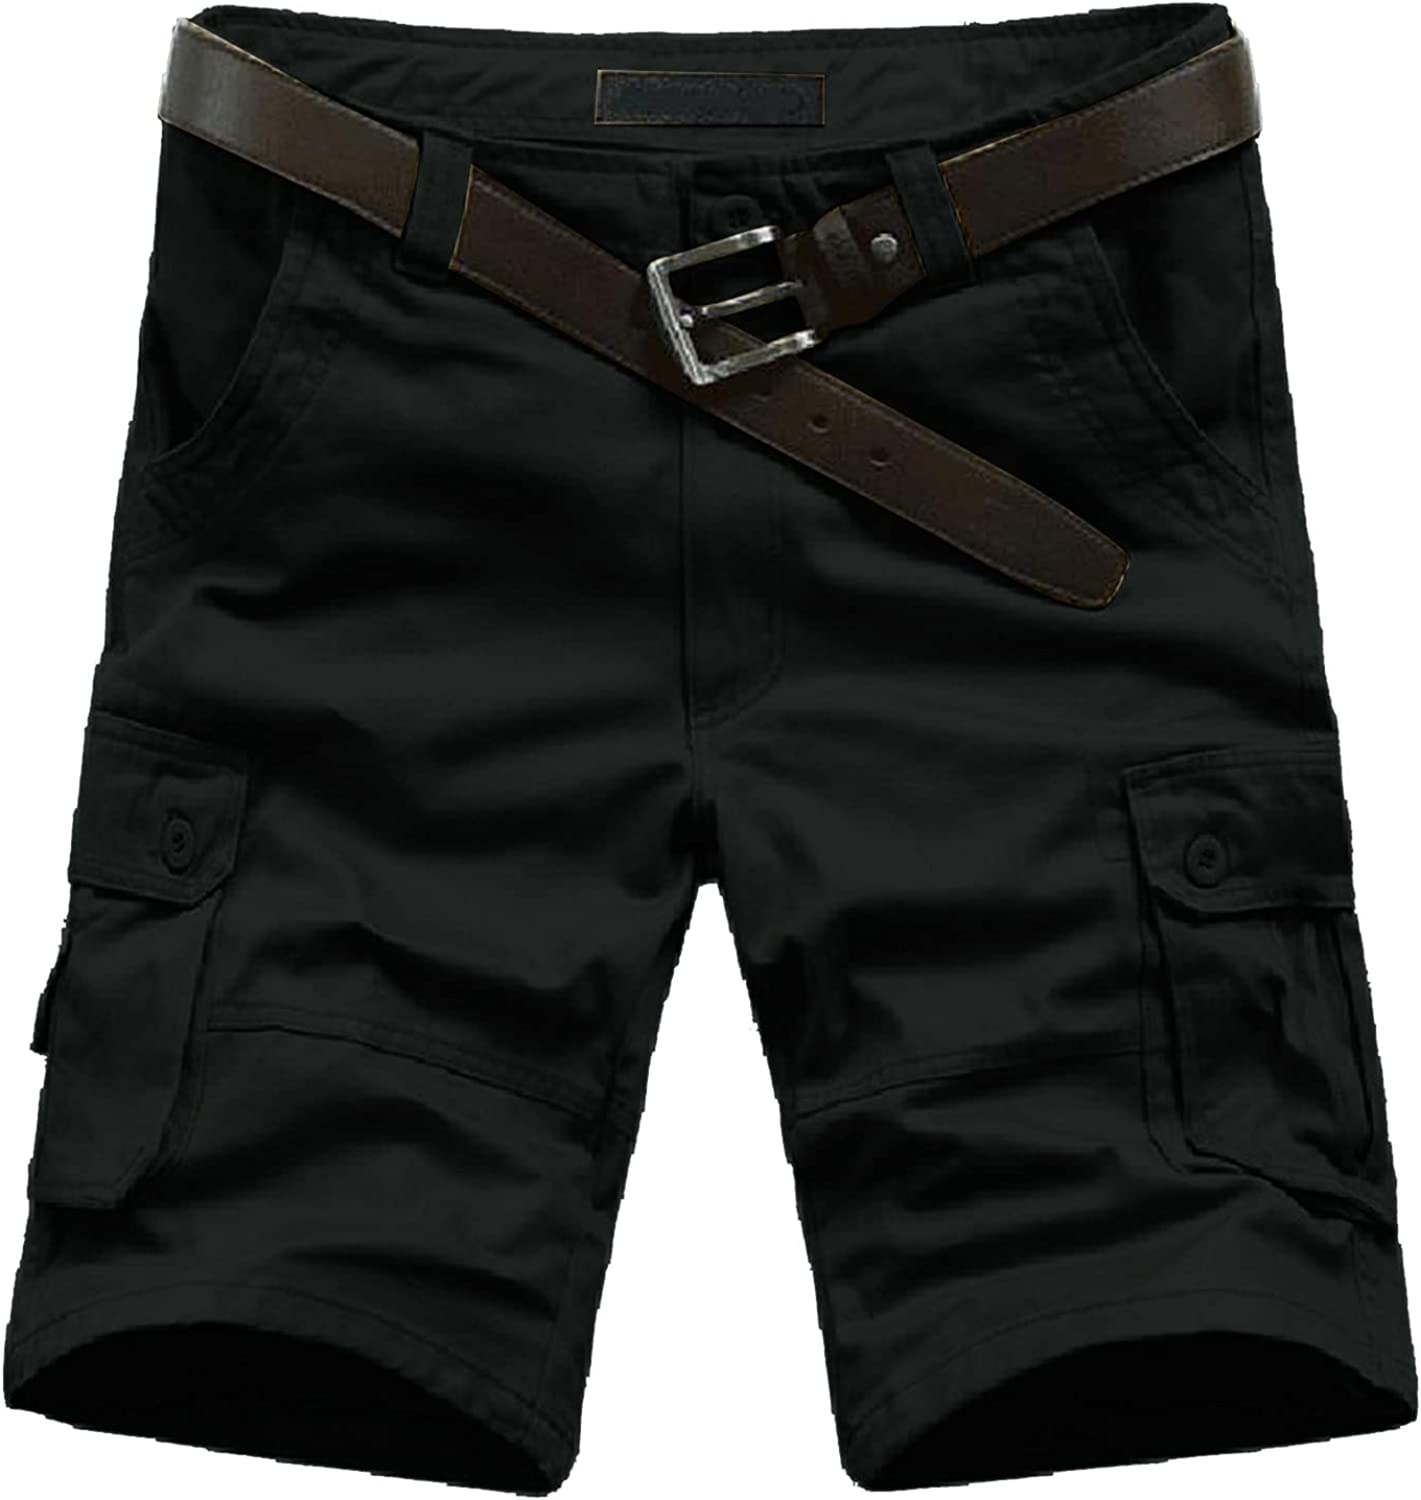 aihihe Mens Camo Cargo Shorts Relaxed Fit Lightweight Multi Pocket Camouflage Outdoor Twill Cargo Shorts